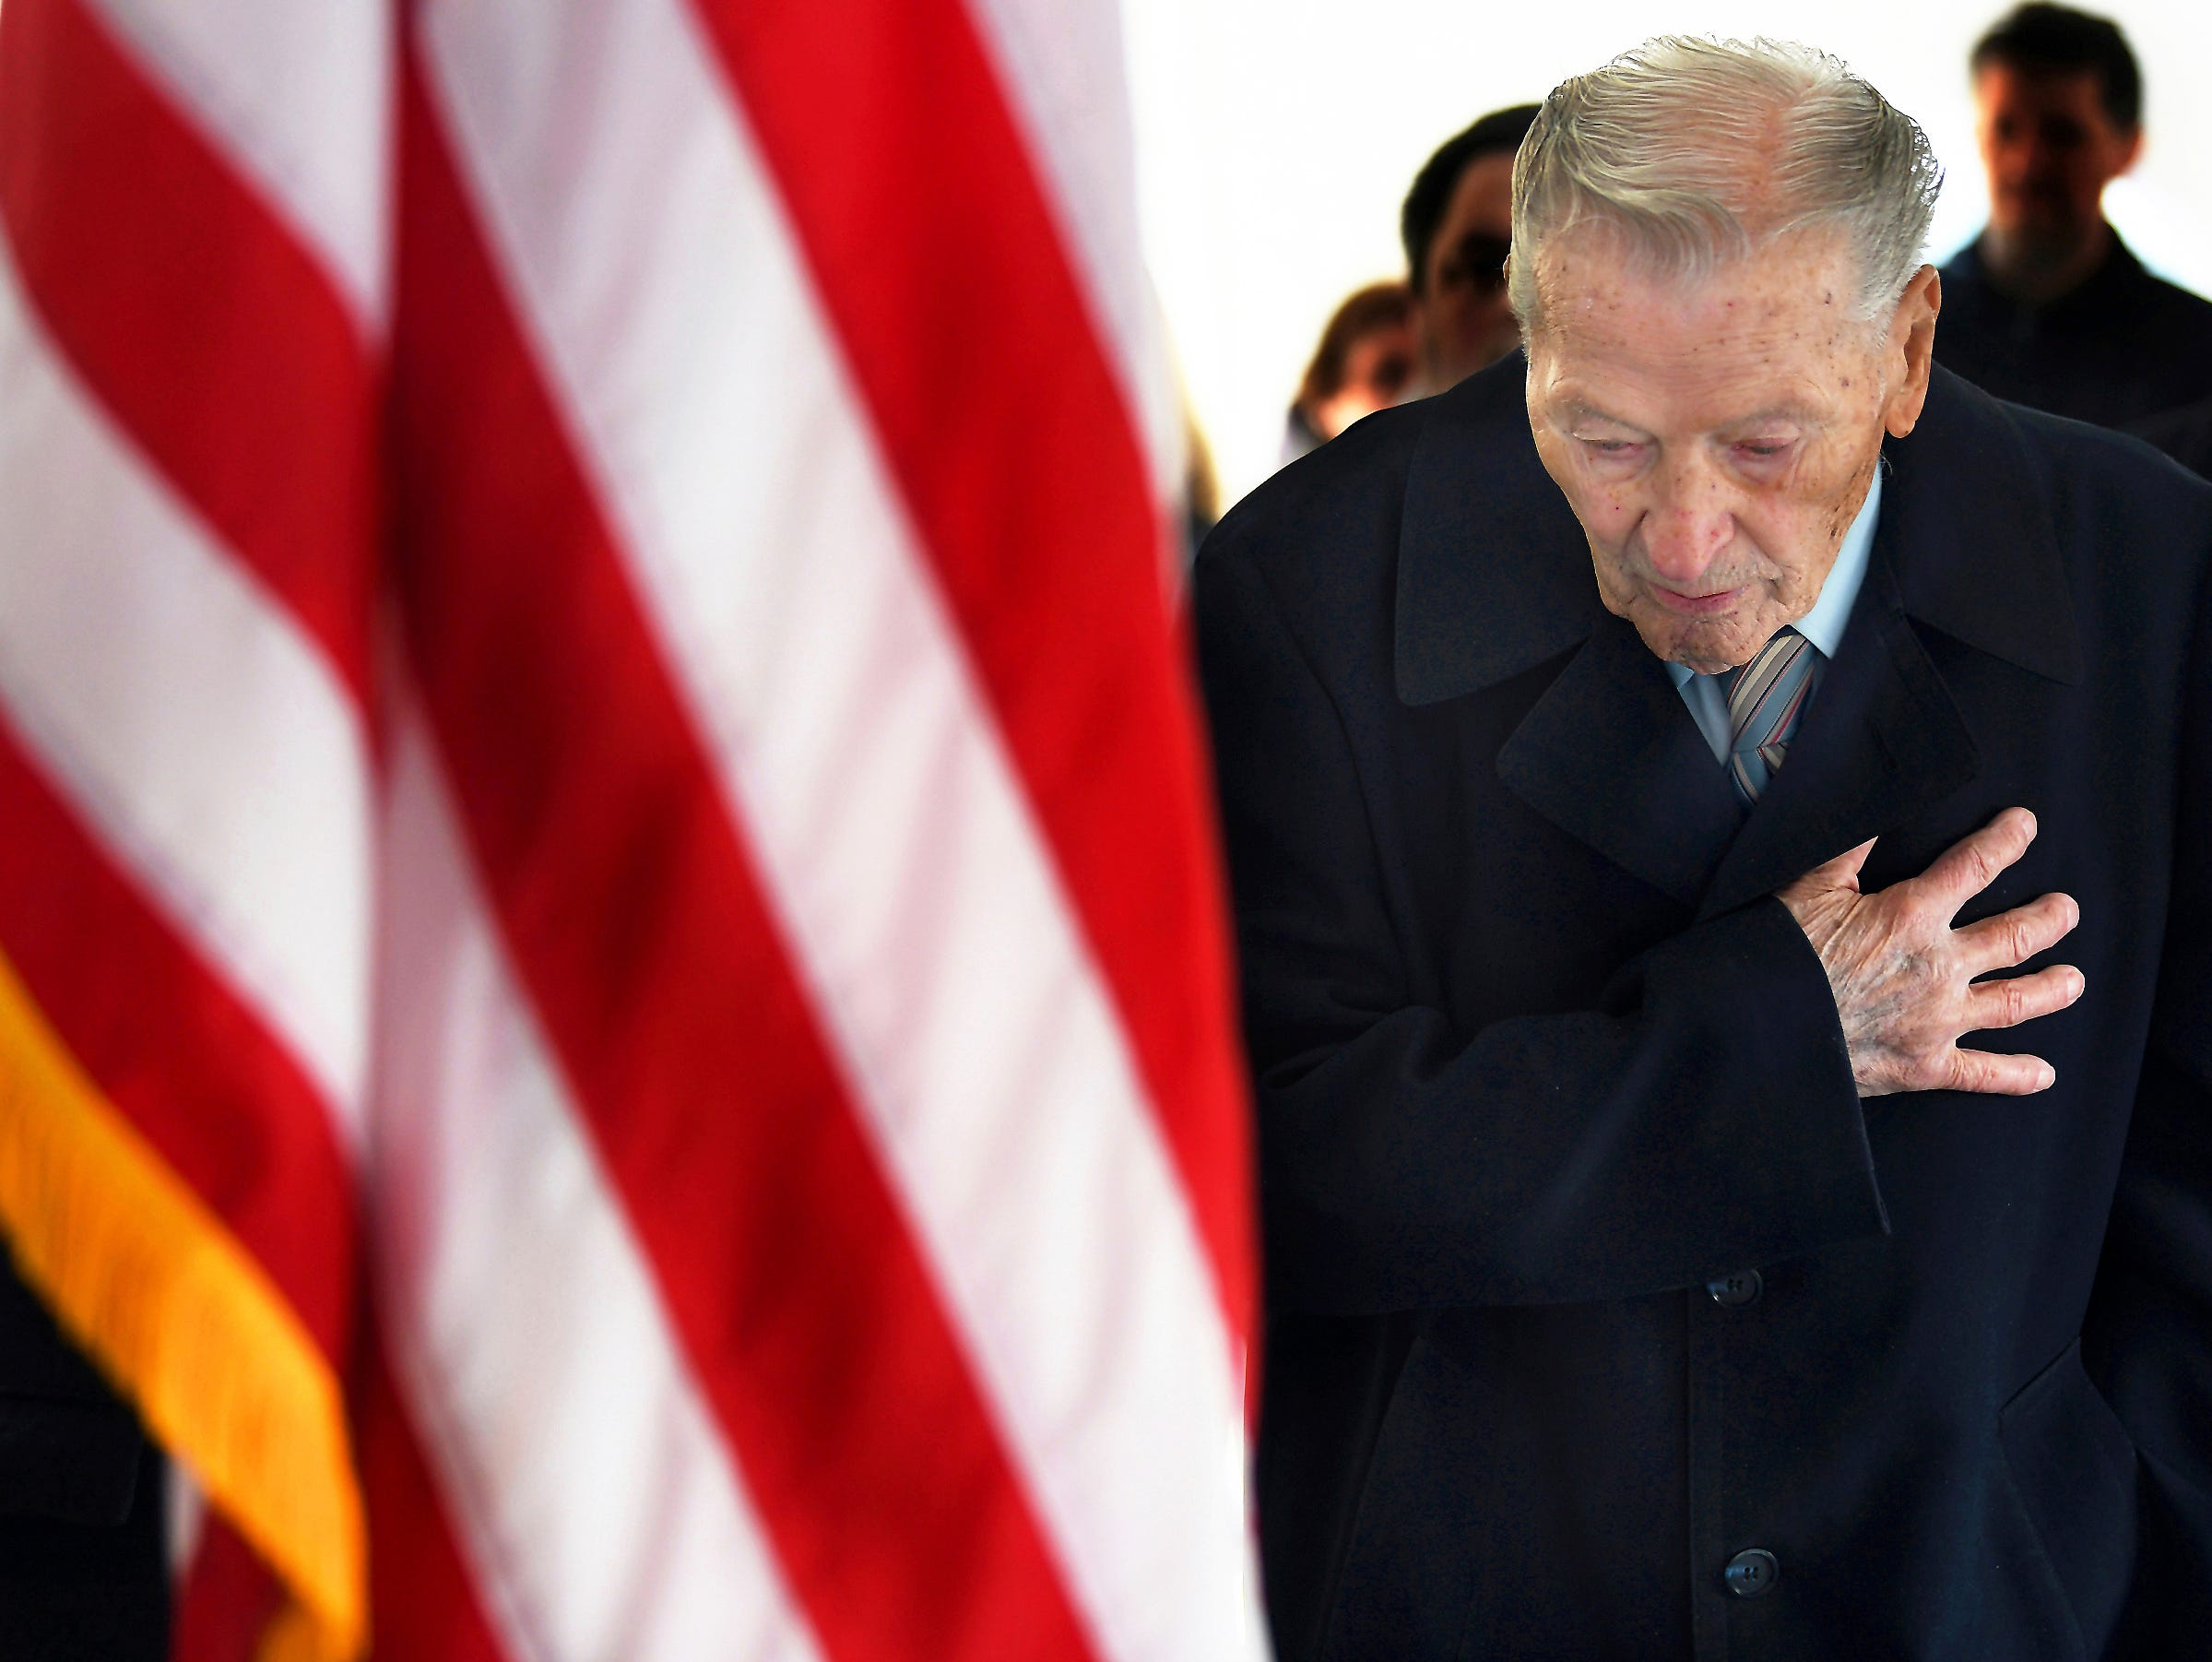 World War II veteran Walter A. Pasiak, 96, of Scranton, Pa., a survivor of the attack on Pearl Harbor on Dec. 7, 1941, bows his head and places his hand over his heart during the national anthem, Friday, Dec. 7, 2018, at a memorial ceremony recognizing the attack on Pearl Harbor held at the Lackawanna County Courthouse in downtown Scranton, Pa. Mr. Pasiak served in the U.S. Army.